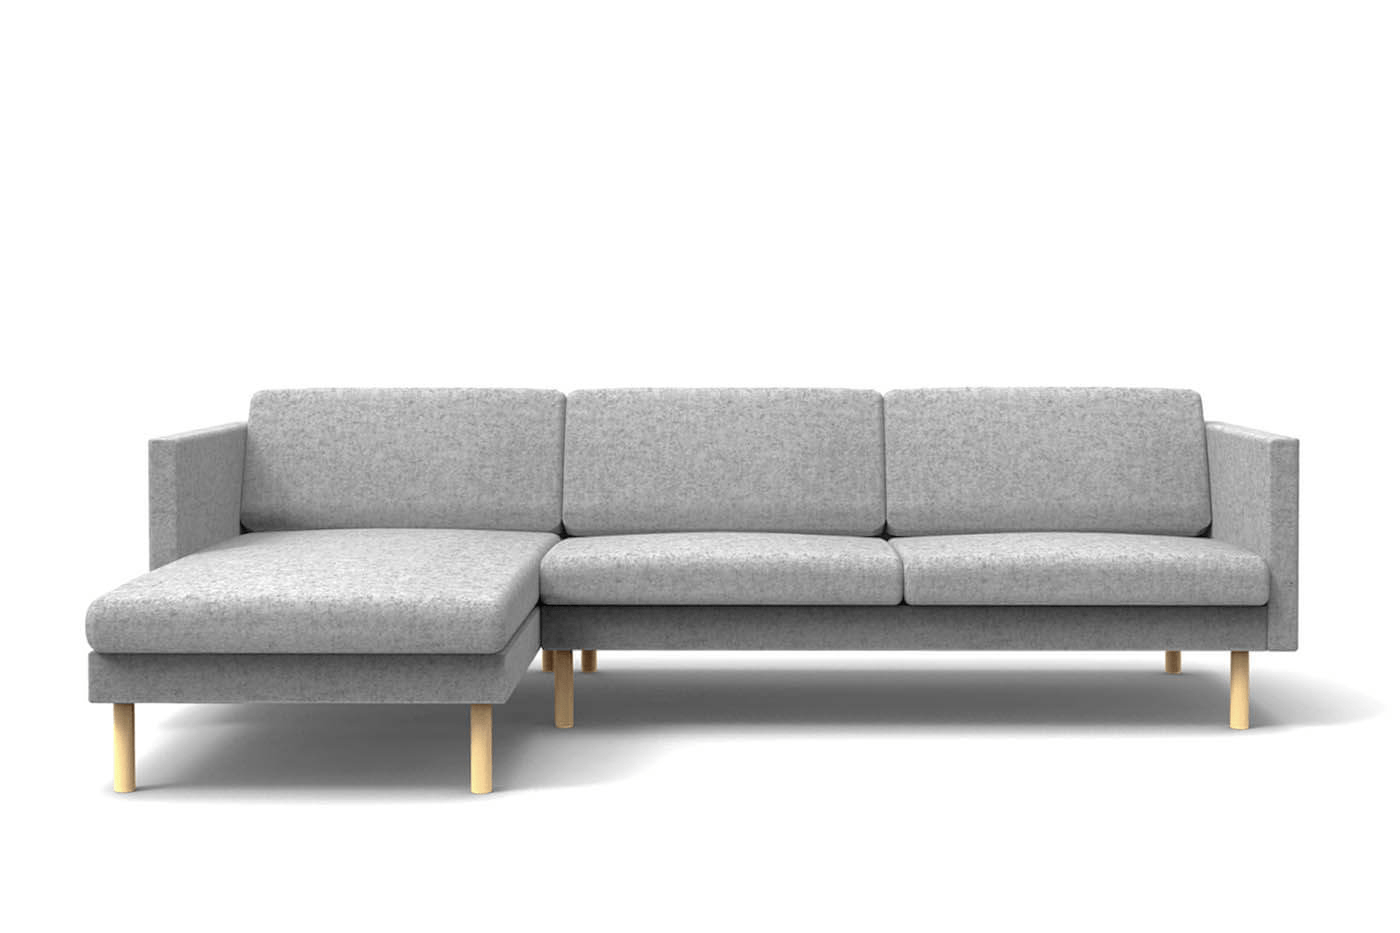 Sofa chaise lounge chaise lounges thesofa for Chaise longue style sofa